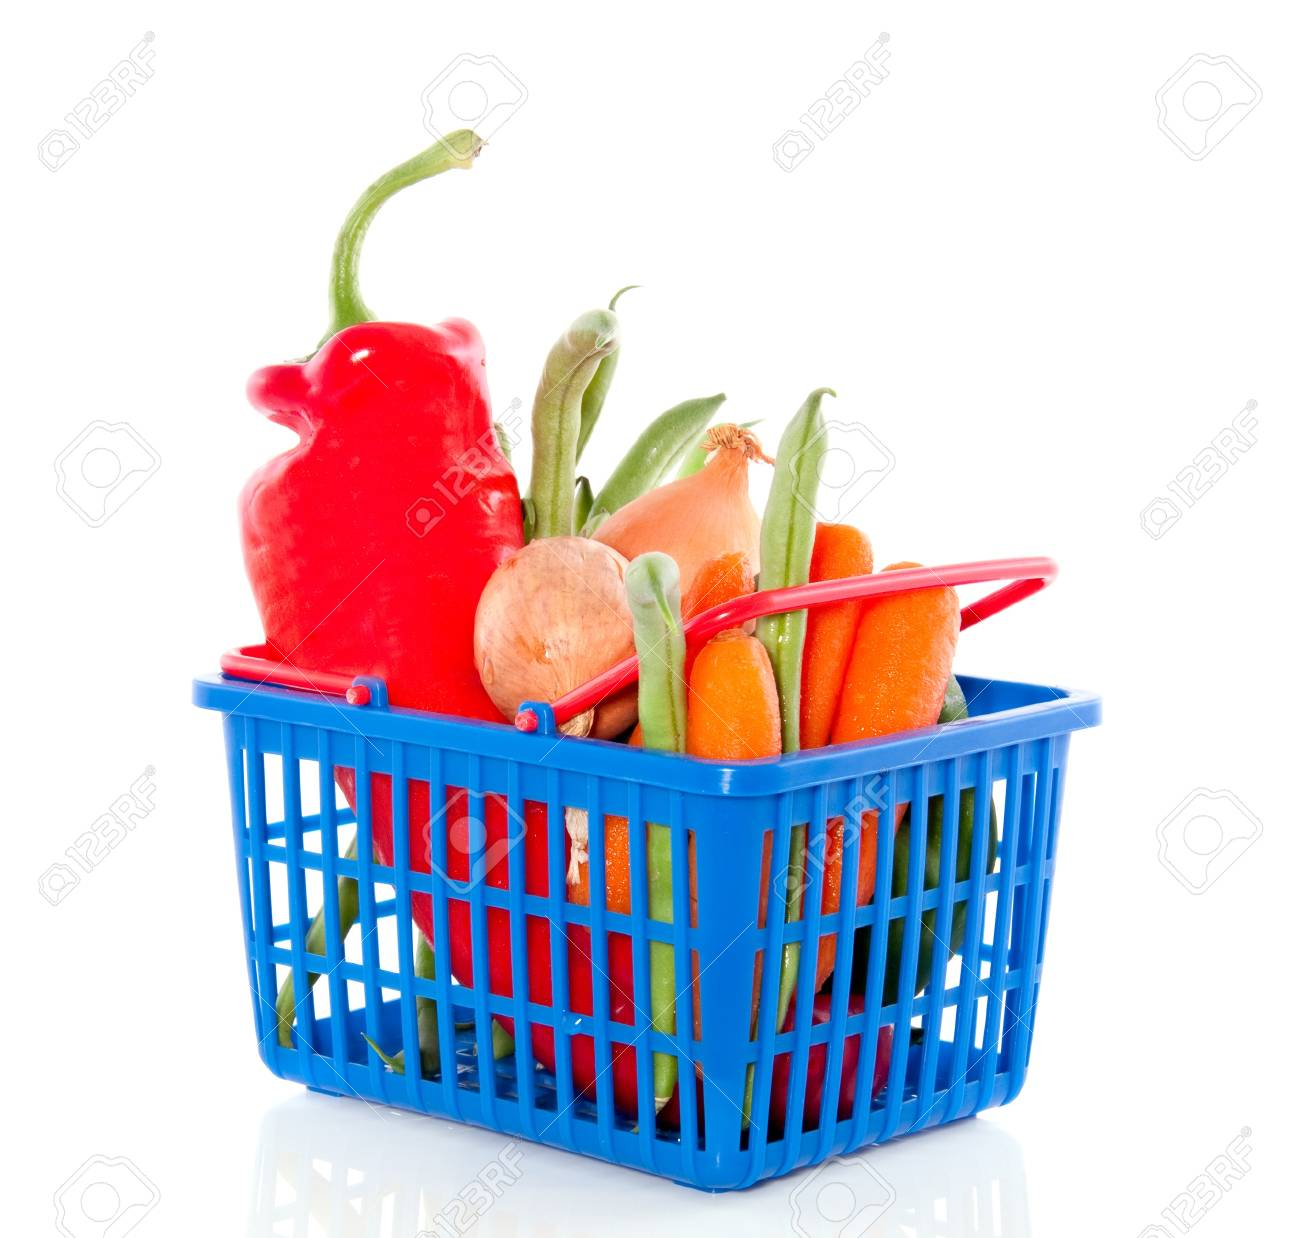 fresh vegetables in a plastic shopping basket isolated over white Stock Photo - 12197425